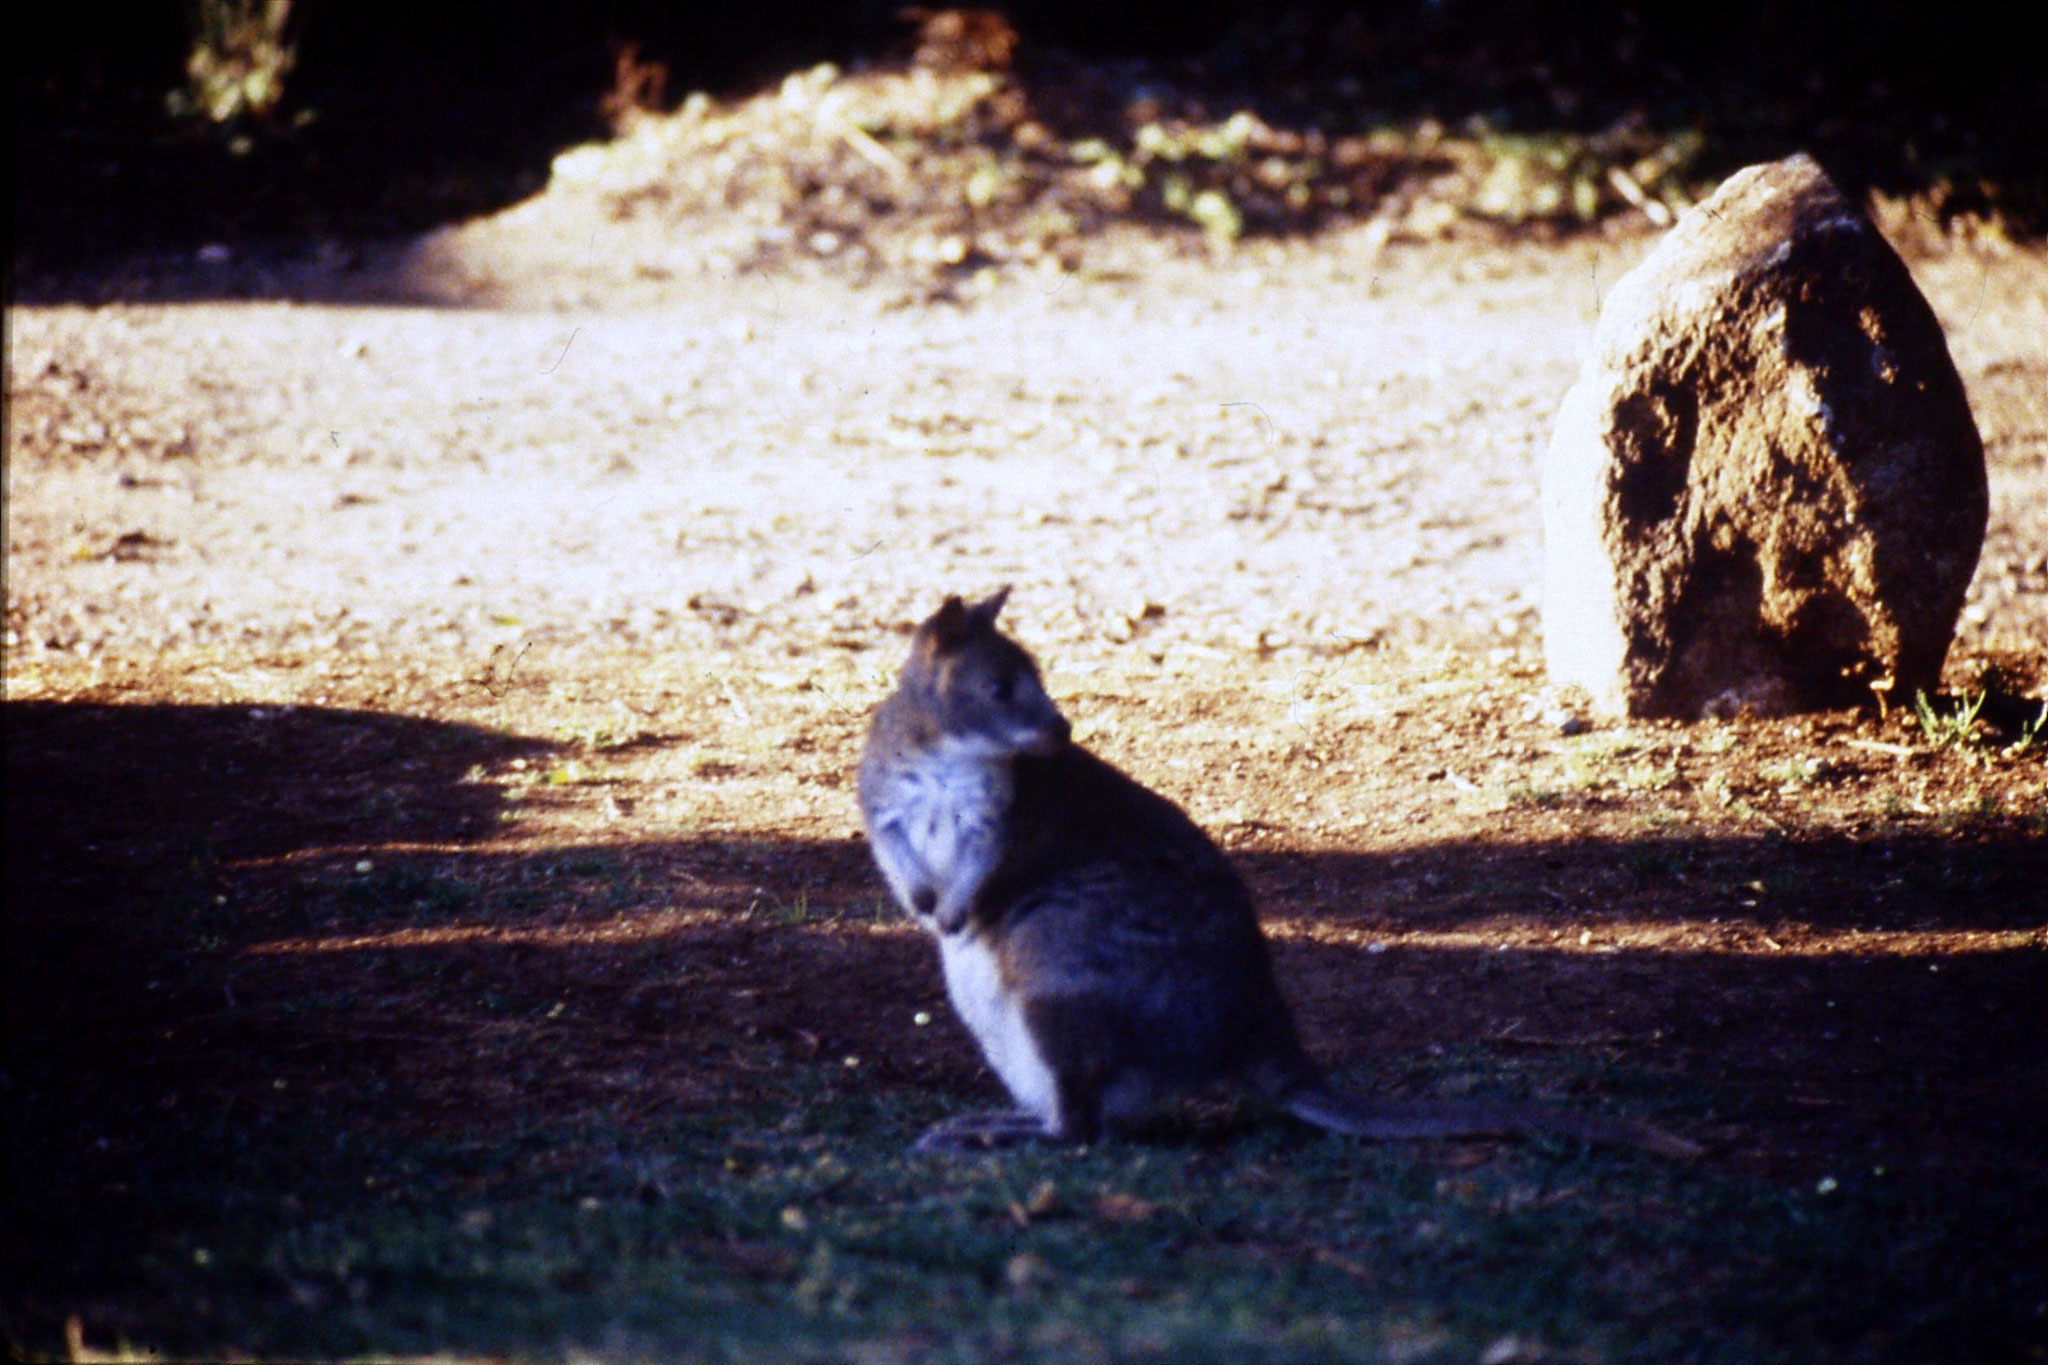 12/10/1990: 4: Mt Lamington, pademelon